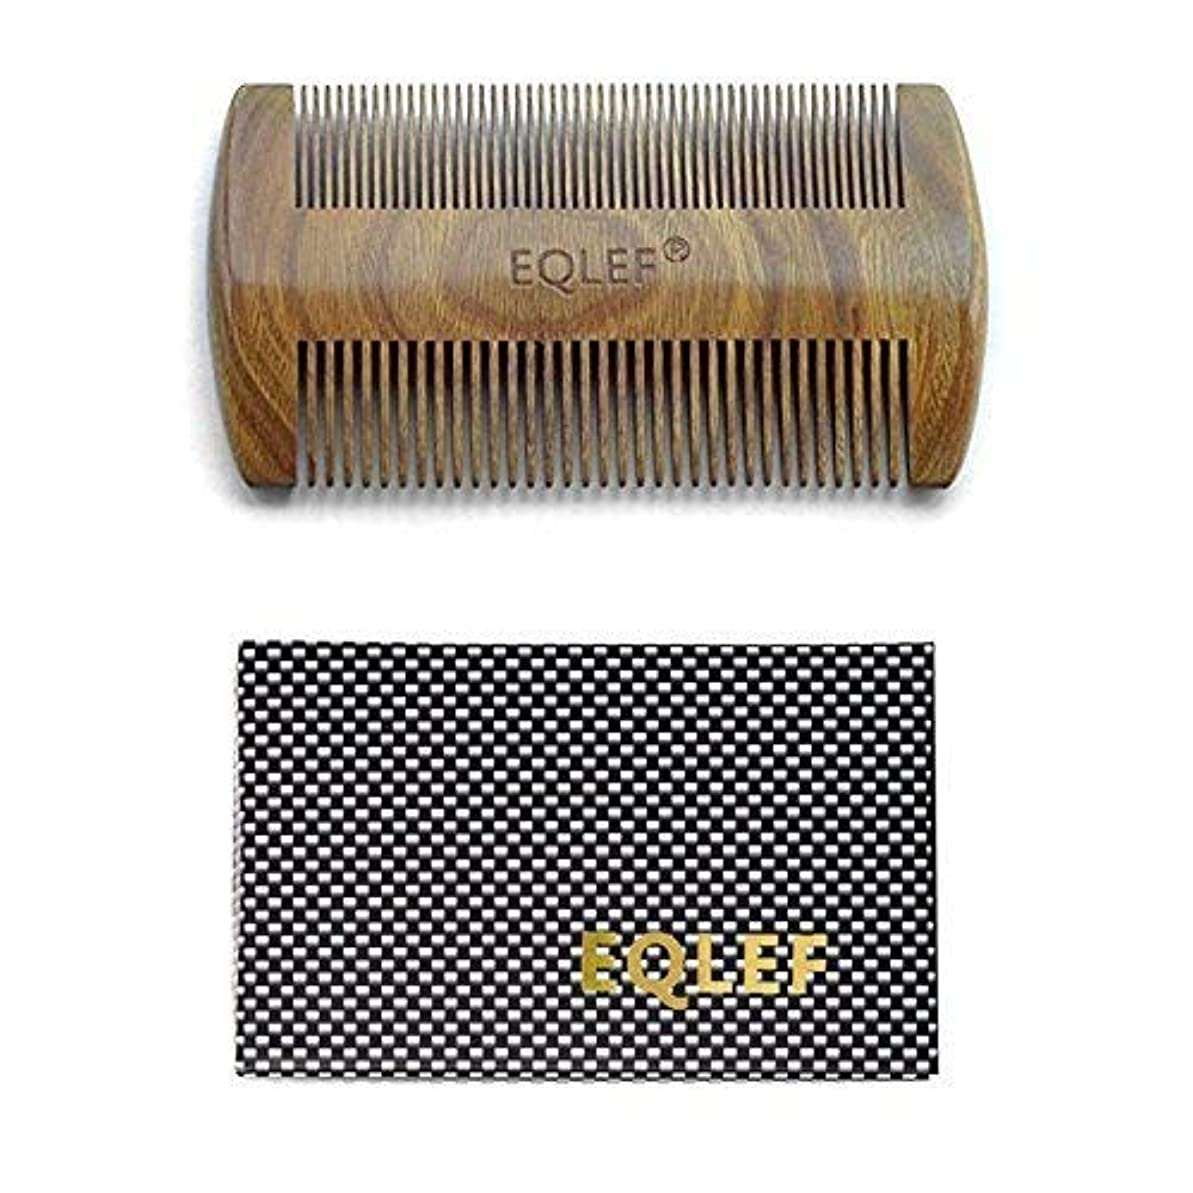 ファンシー関係バッジEQLEF? Green sandalwood no static handmade comb,Pocket comb (beard) [並行輸入品]